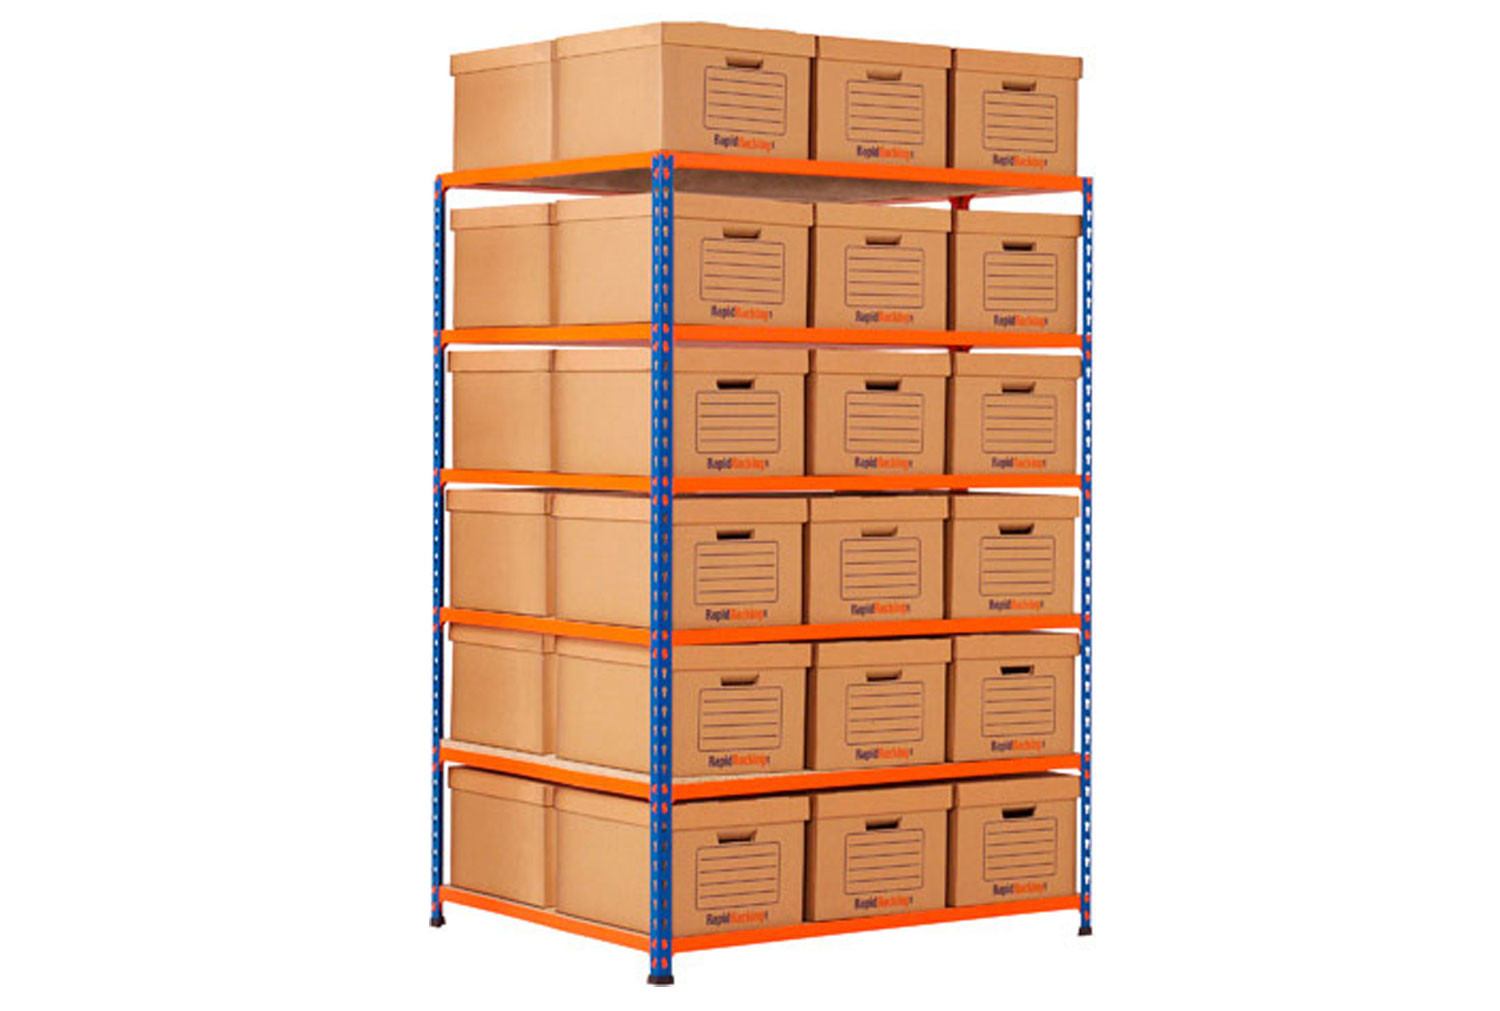 Rapid 2 double sided storage bay with 36 brown document boxes